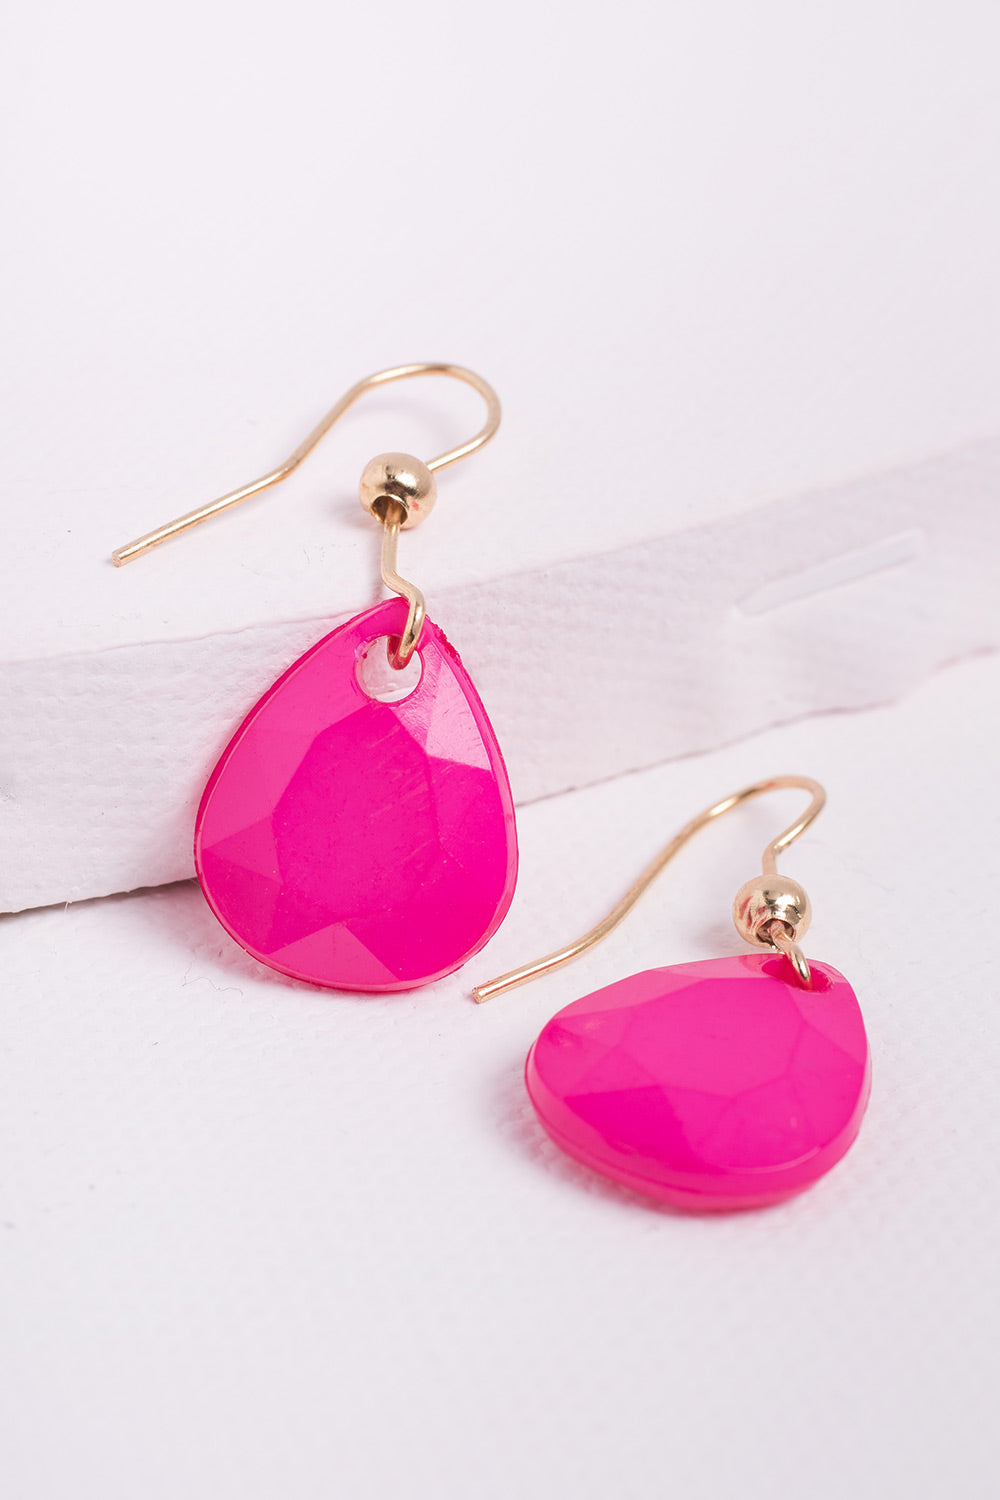 Type 1 Pinky Winky Earrings